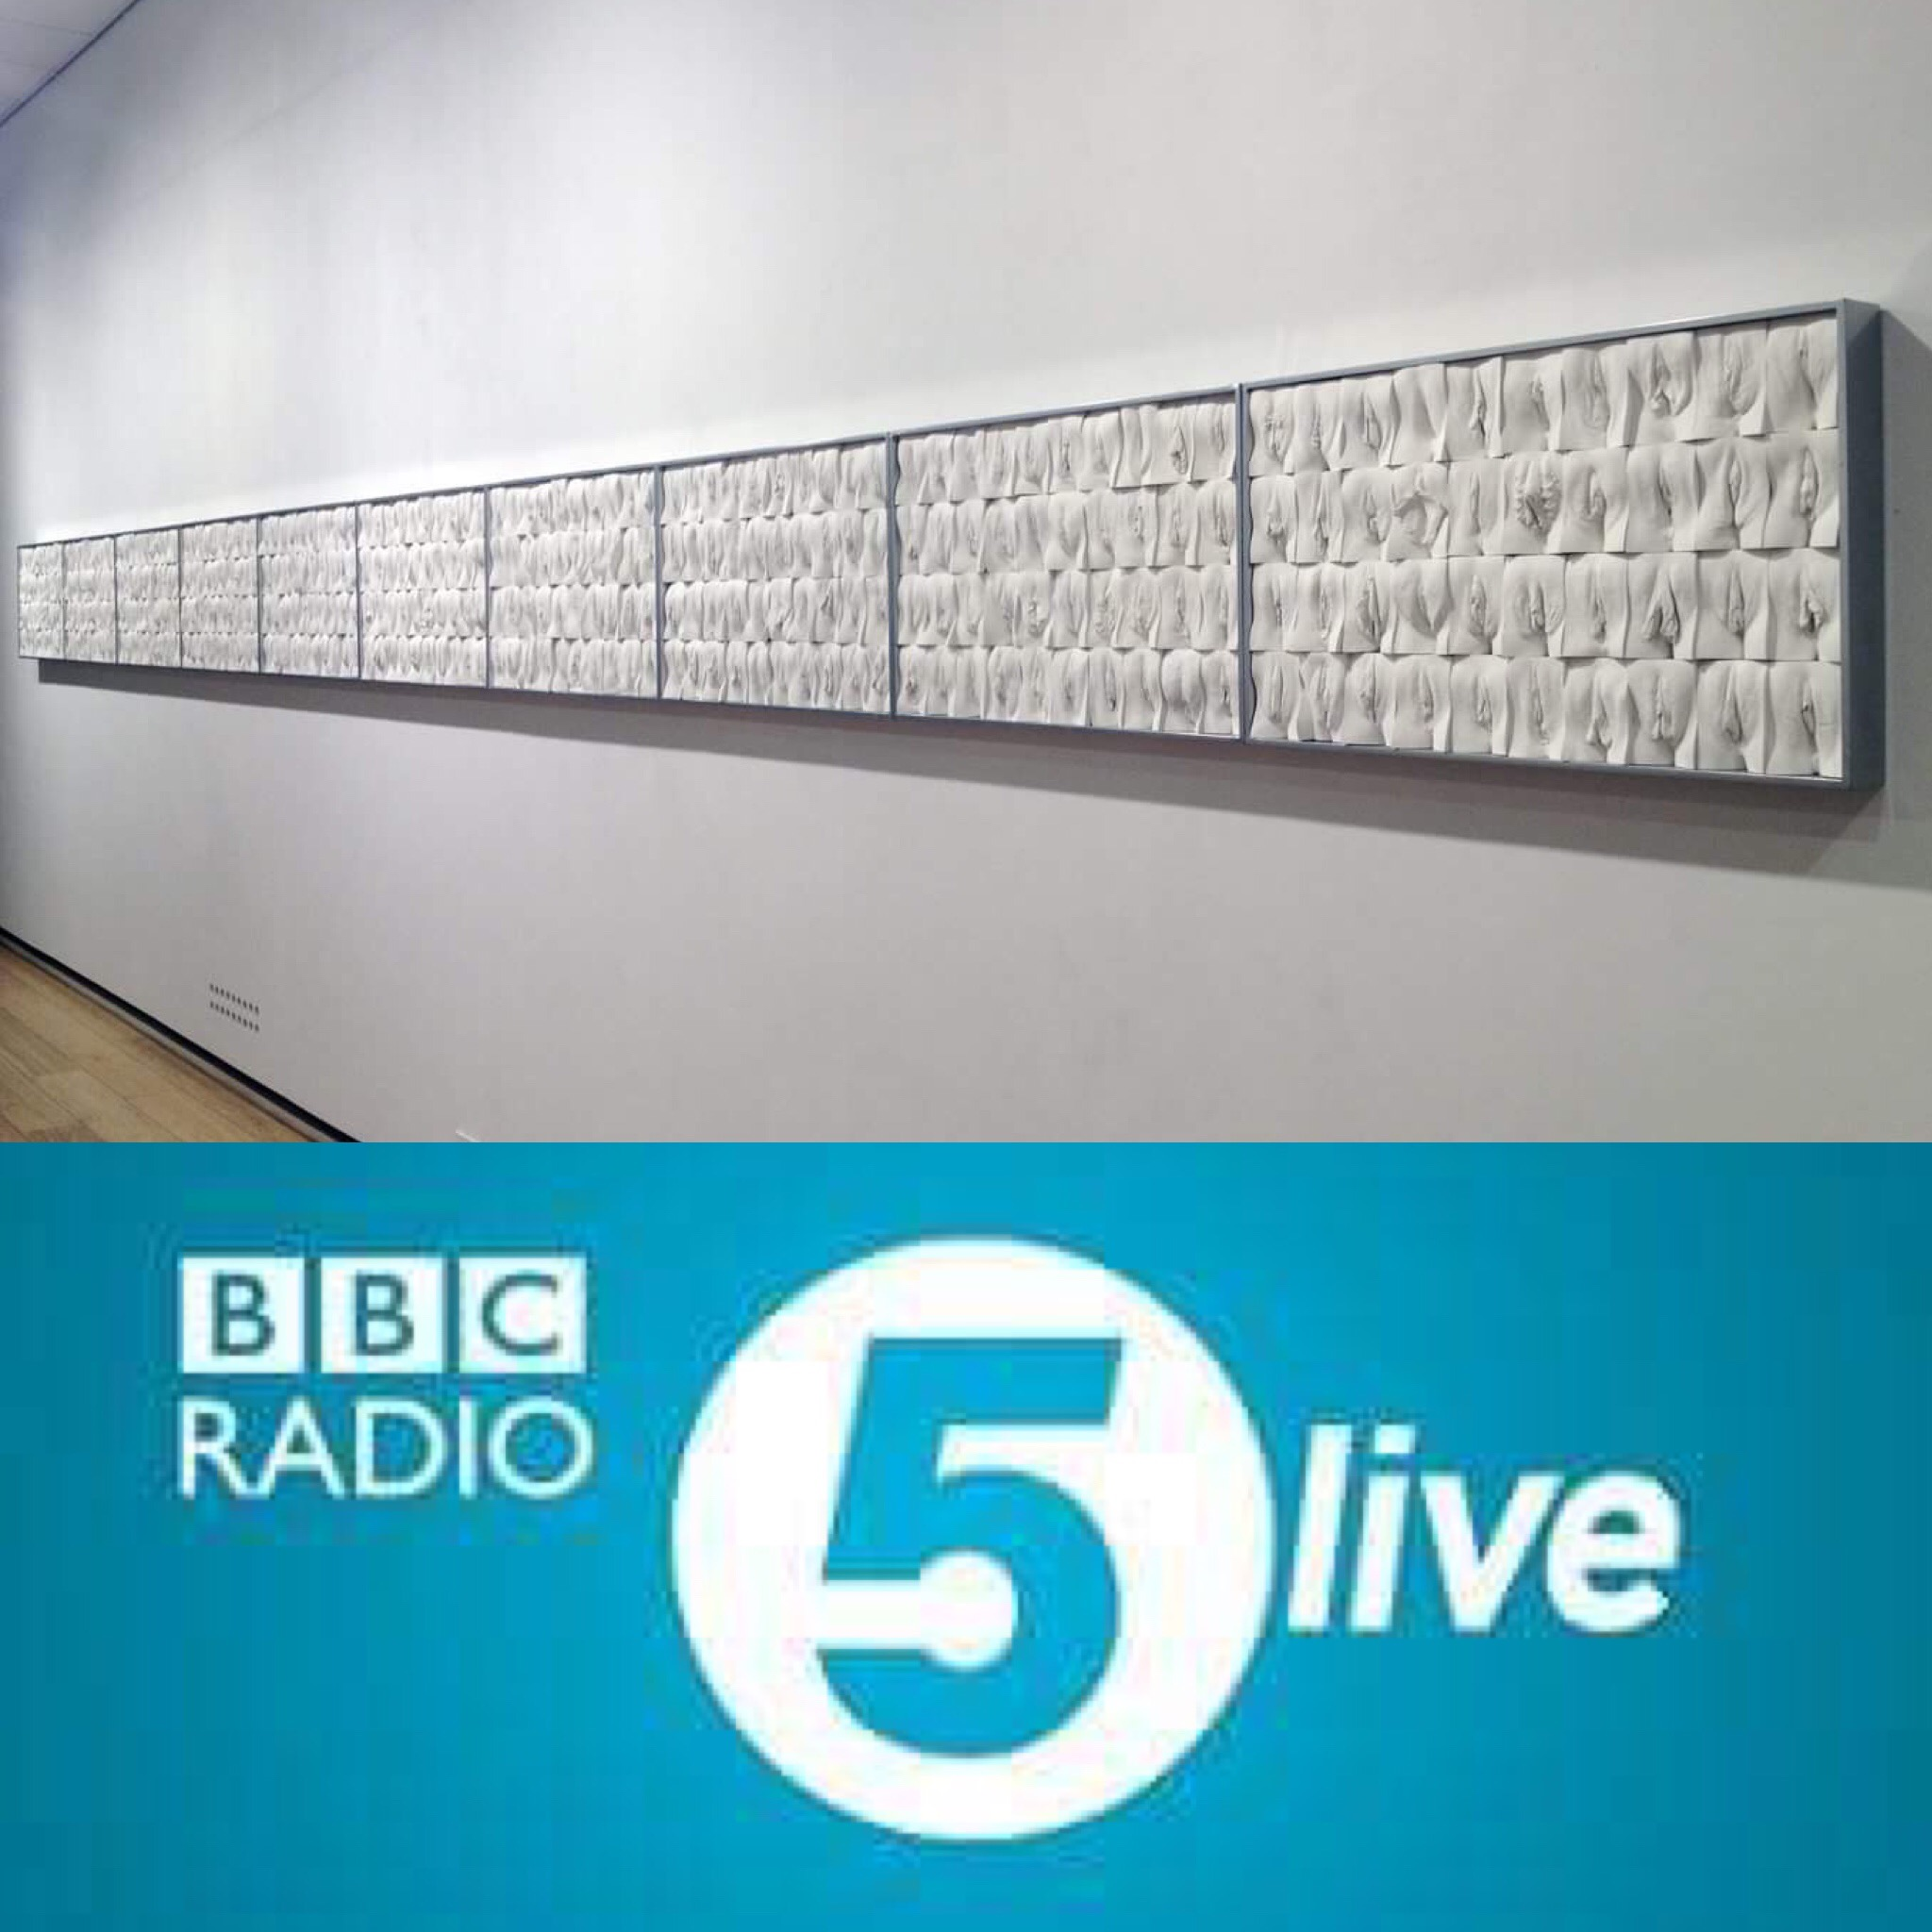 BBC Radio 5 Live   Jamie McCartney BBC Radio 5 Live